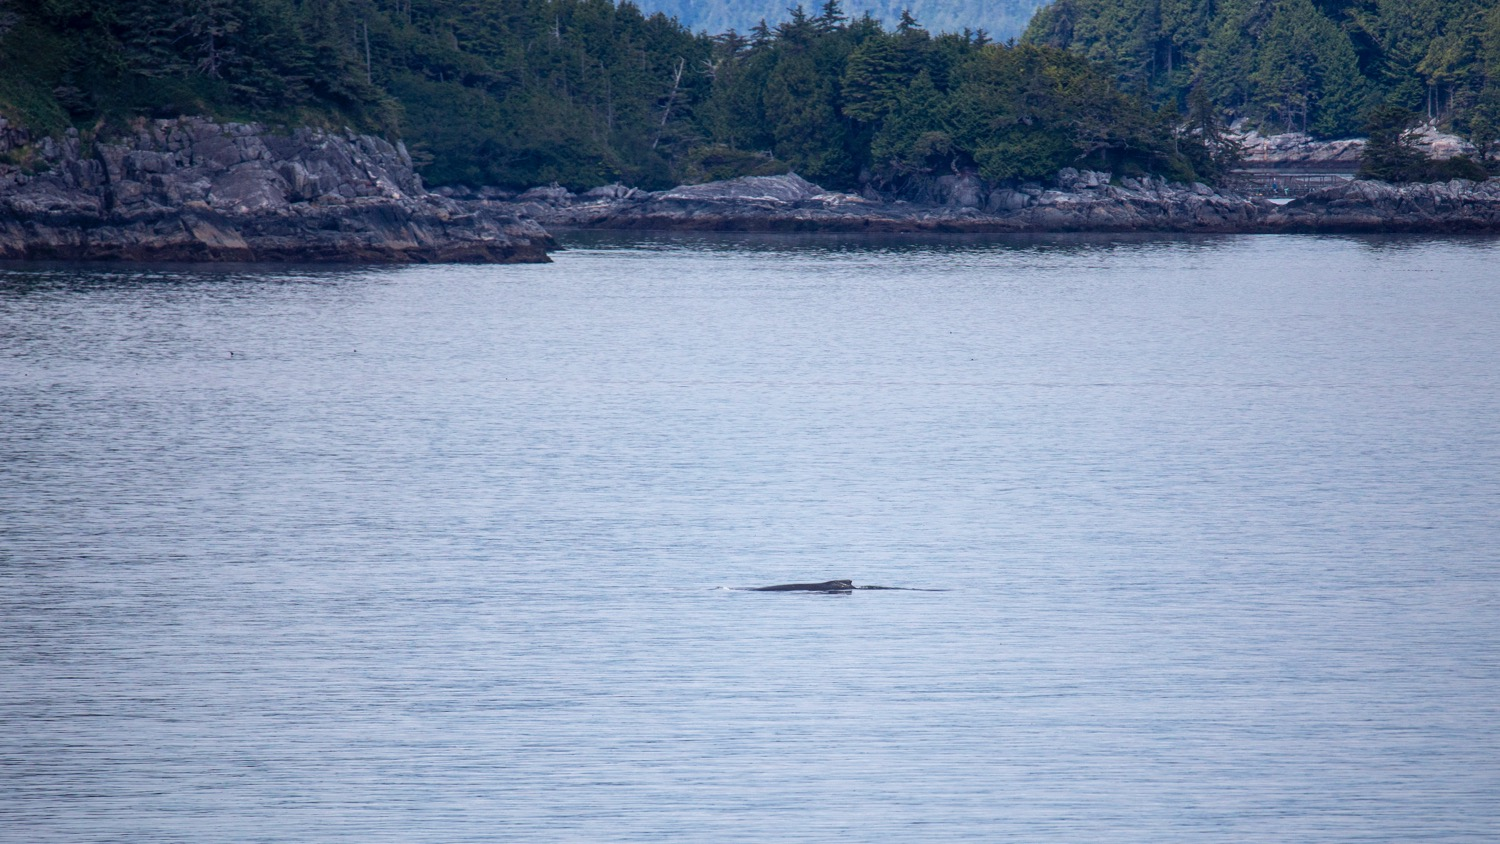 Early on in the day we saw a couple of long humpbacks as the ship cruised by.